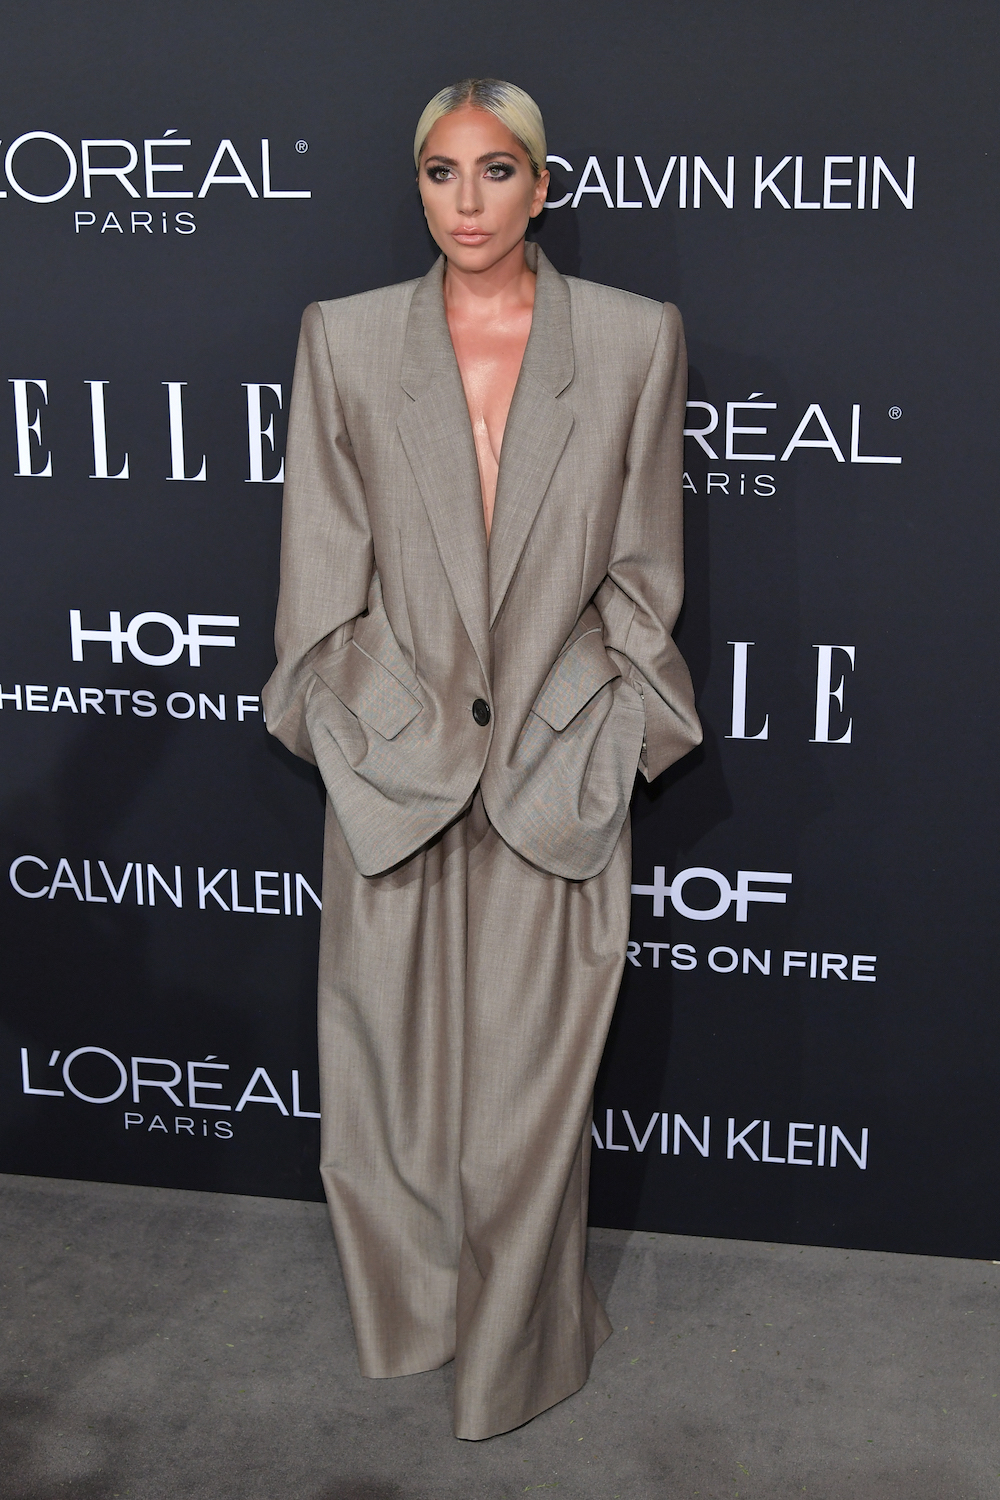 LOS ANGELES, CALIFORNIA - OCTOBER 15: Lady Gaga attends ELLE's 25th Annual Women In Hollywood Celebration presented by L'Oreal Paris, Hearts On Fire and CALVIN KLEIN at Four Seasons Hotel Los Angeles at Beverly Hills on October 15, 2018 in Los Angeles, California. (Photo by Neilson Barnard/Getty Images for ELLE Magazine)